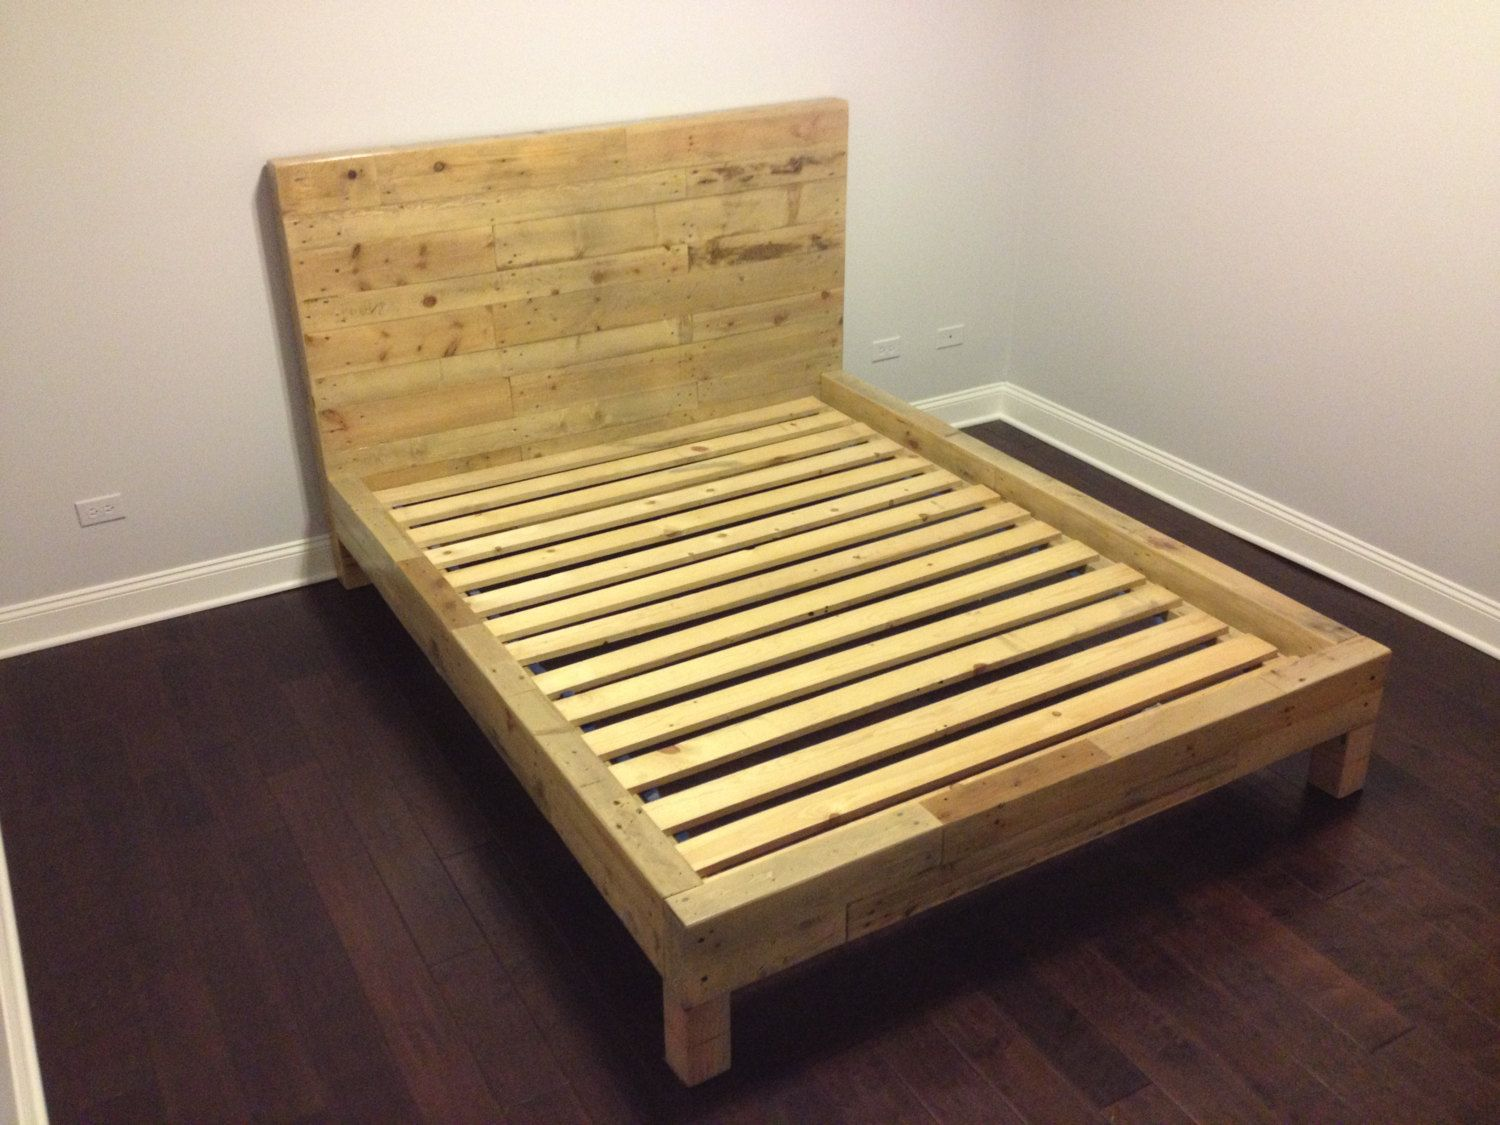 30 Inspiration Image of Pallet Beds For Kids Pallet bed